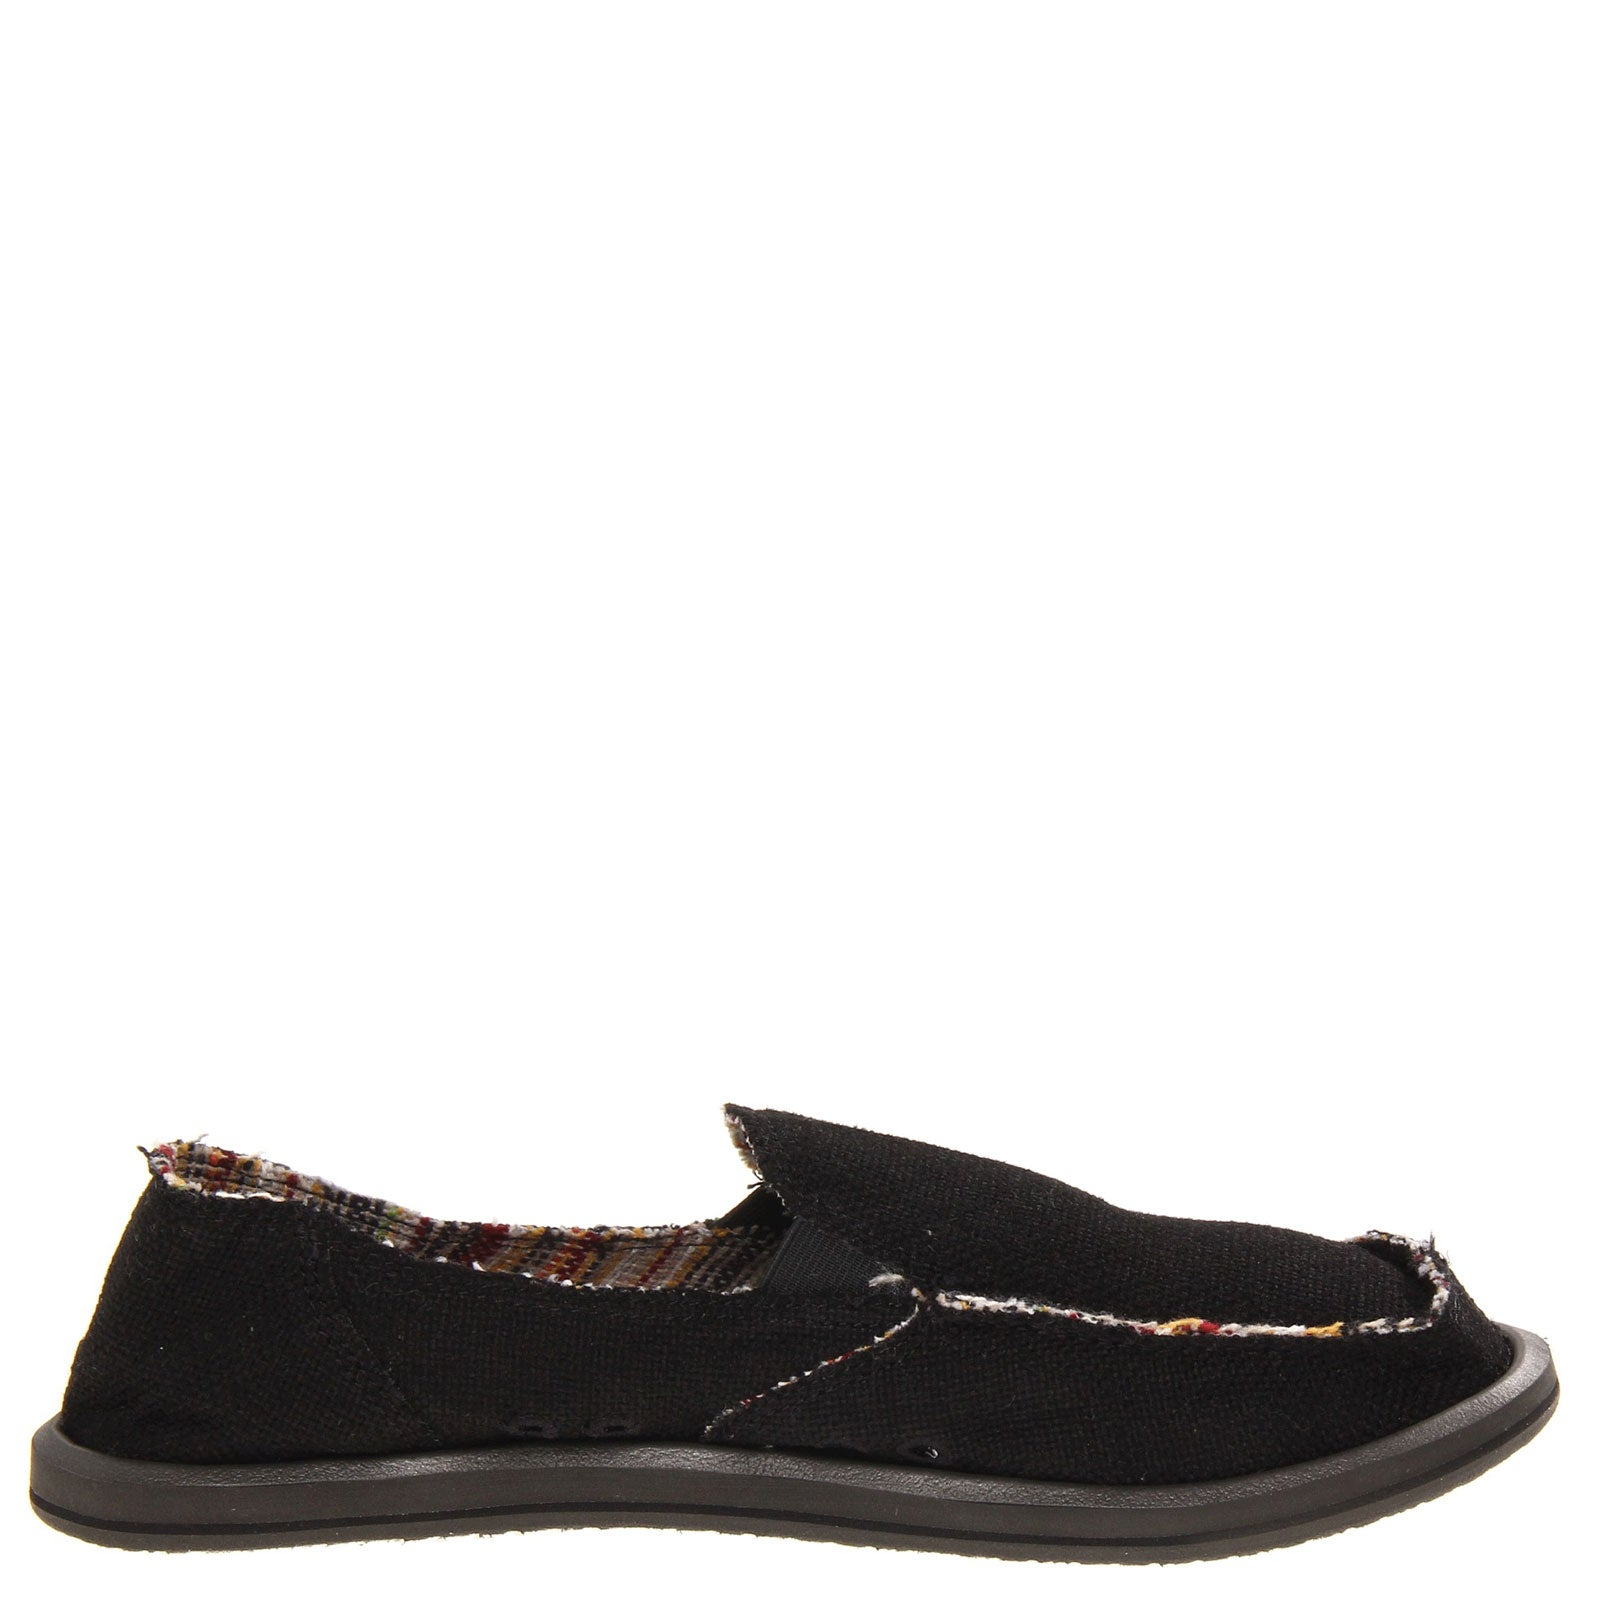 Sanuk Donna Hemp-Natural Fiona-20